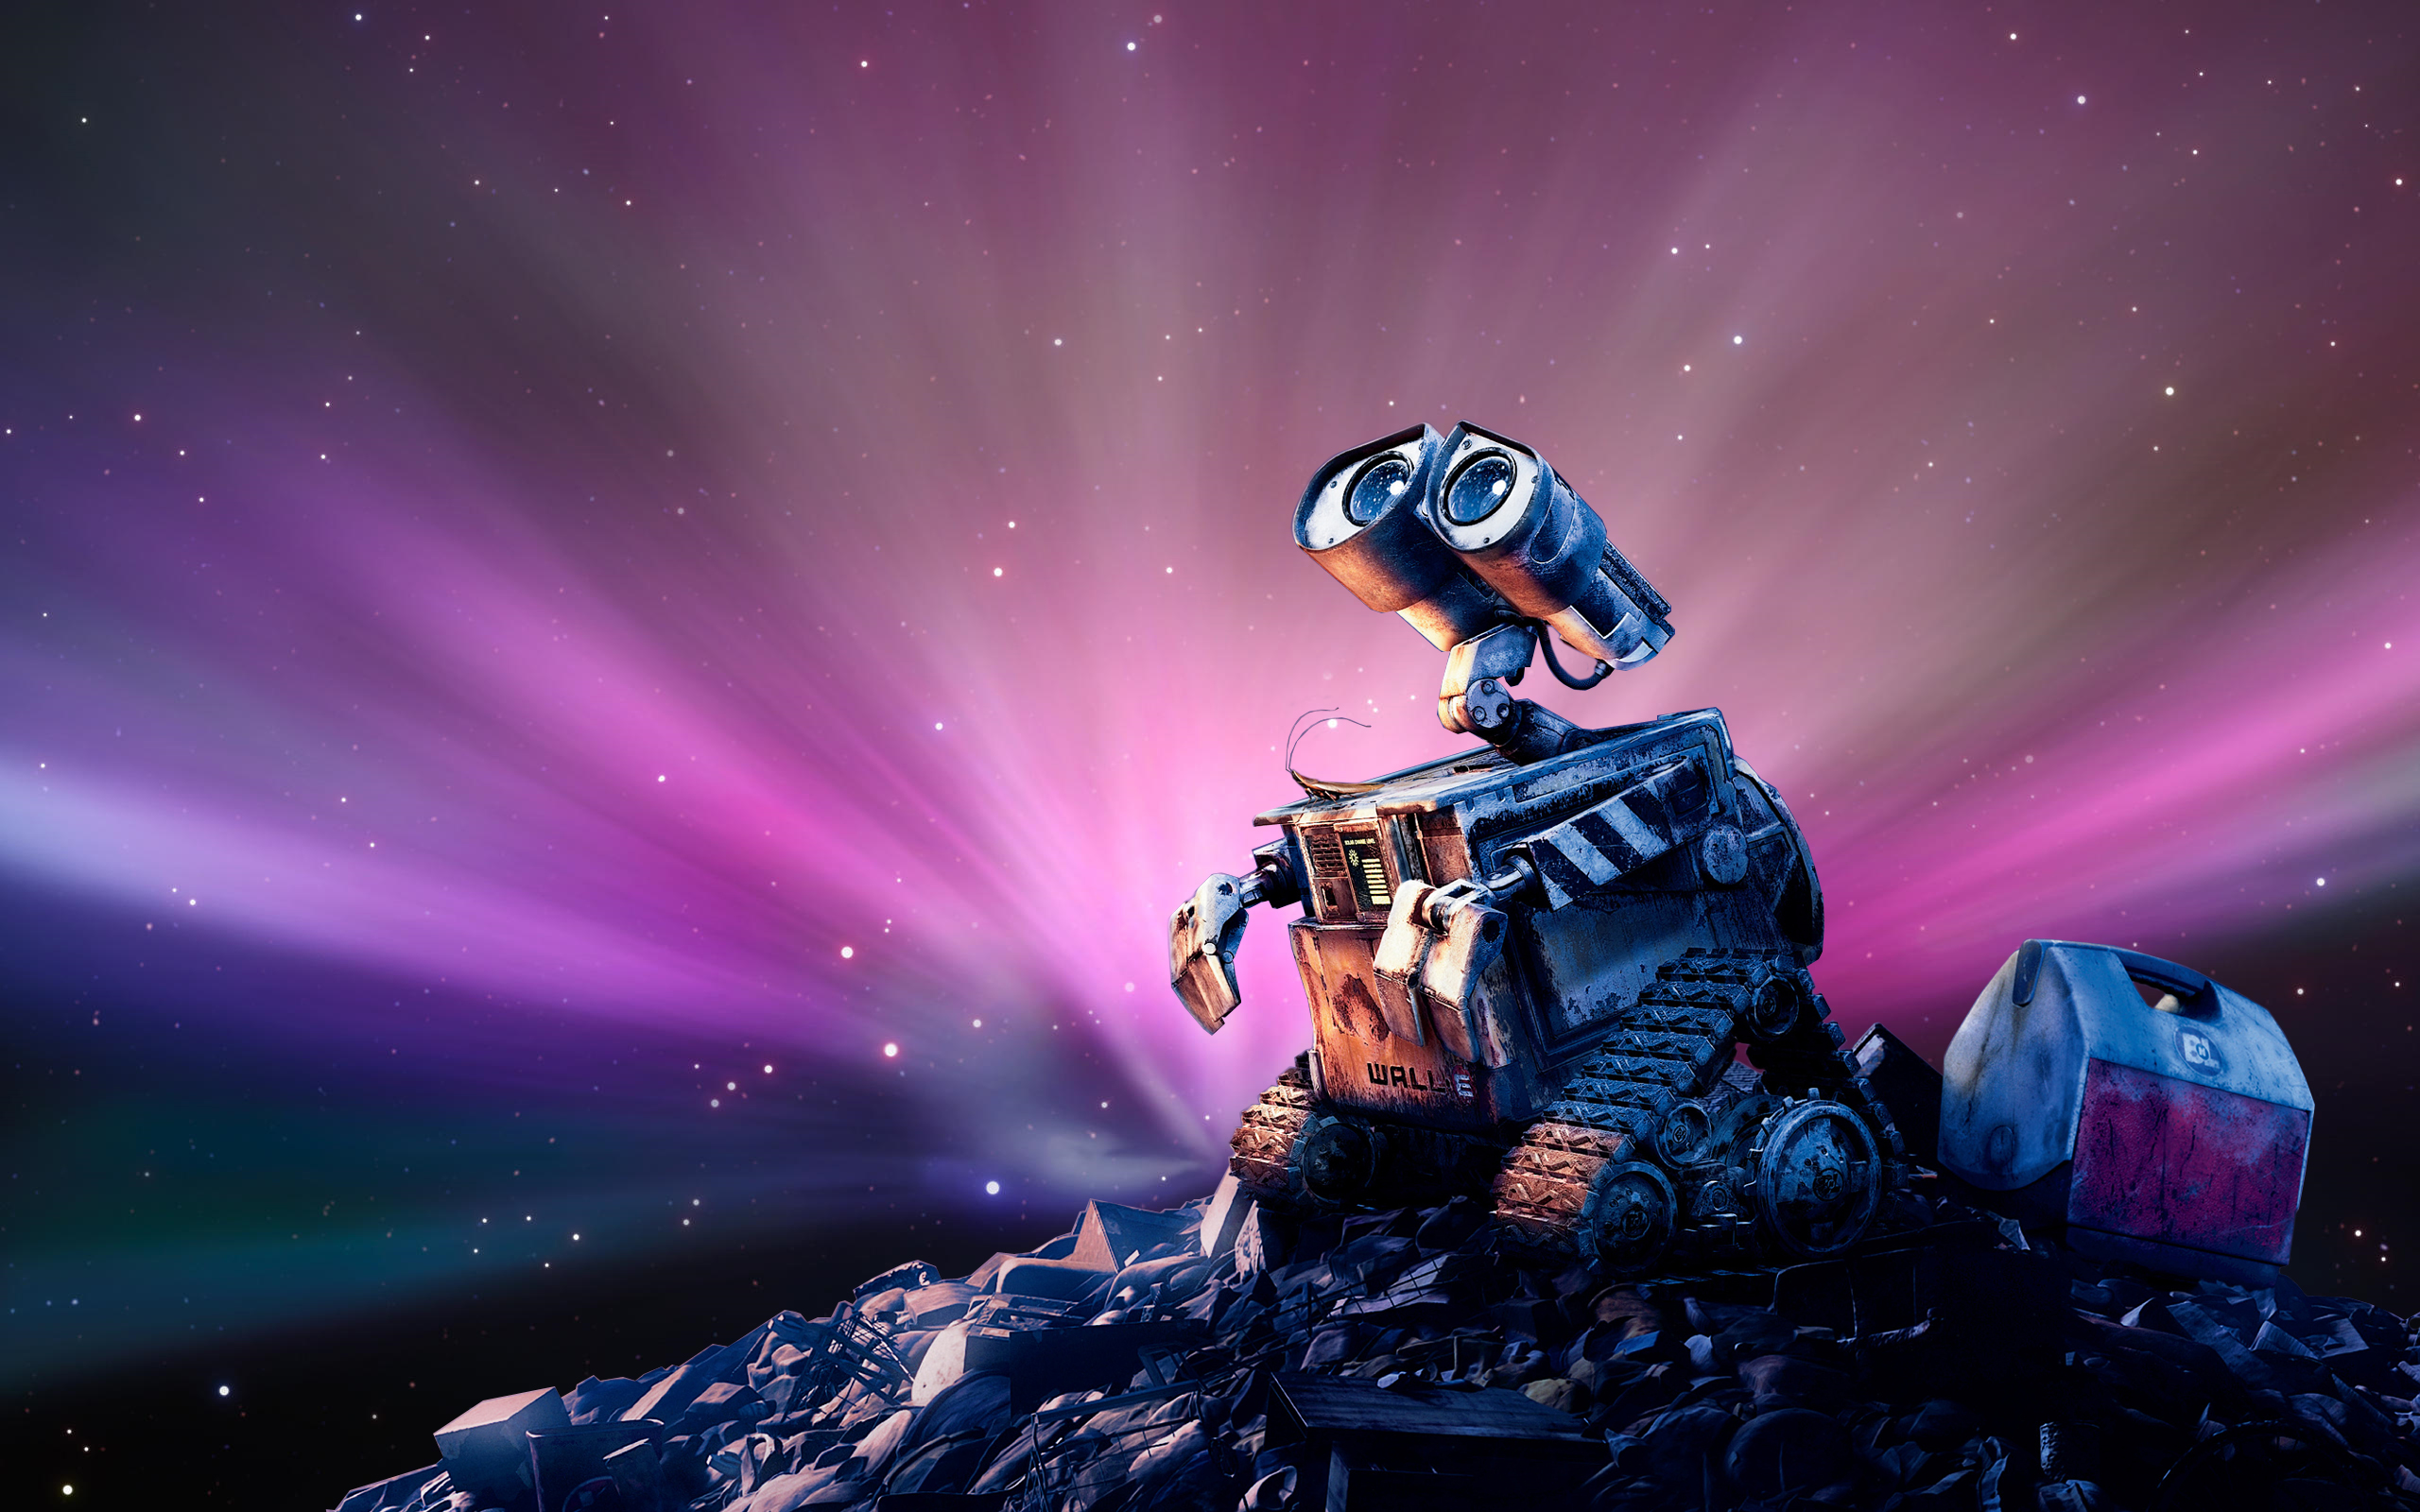 Walle Wallpapers Desktop Wallpapers 2560x1600